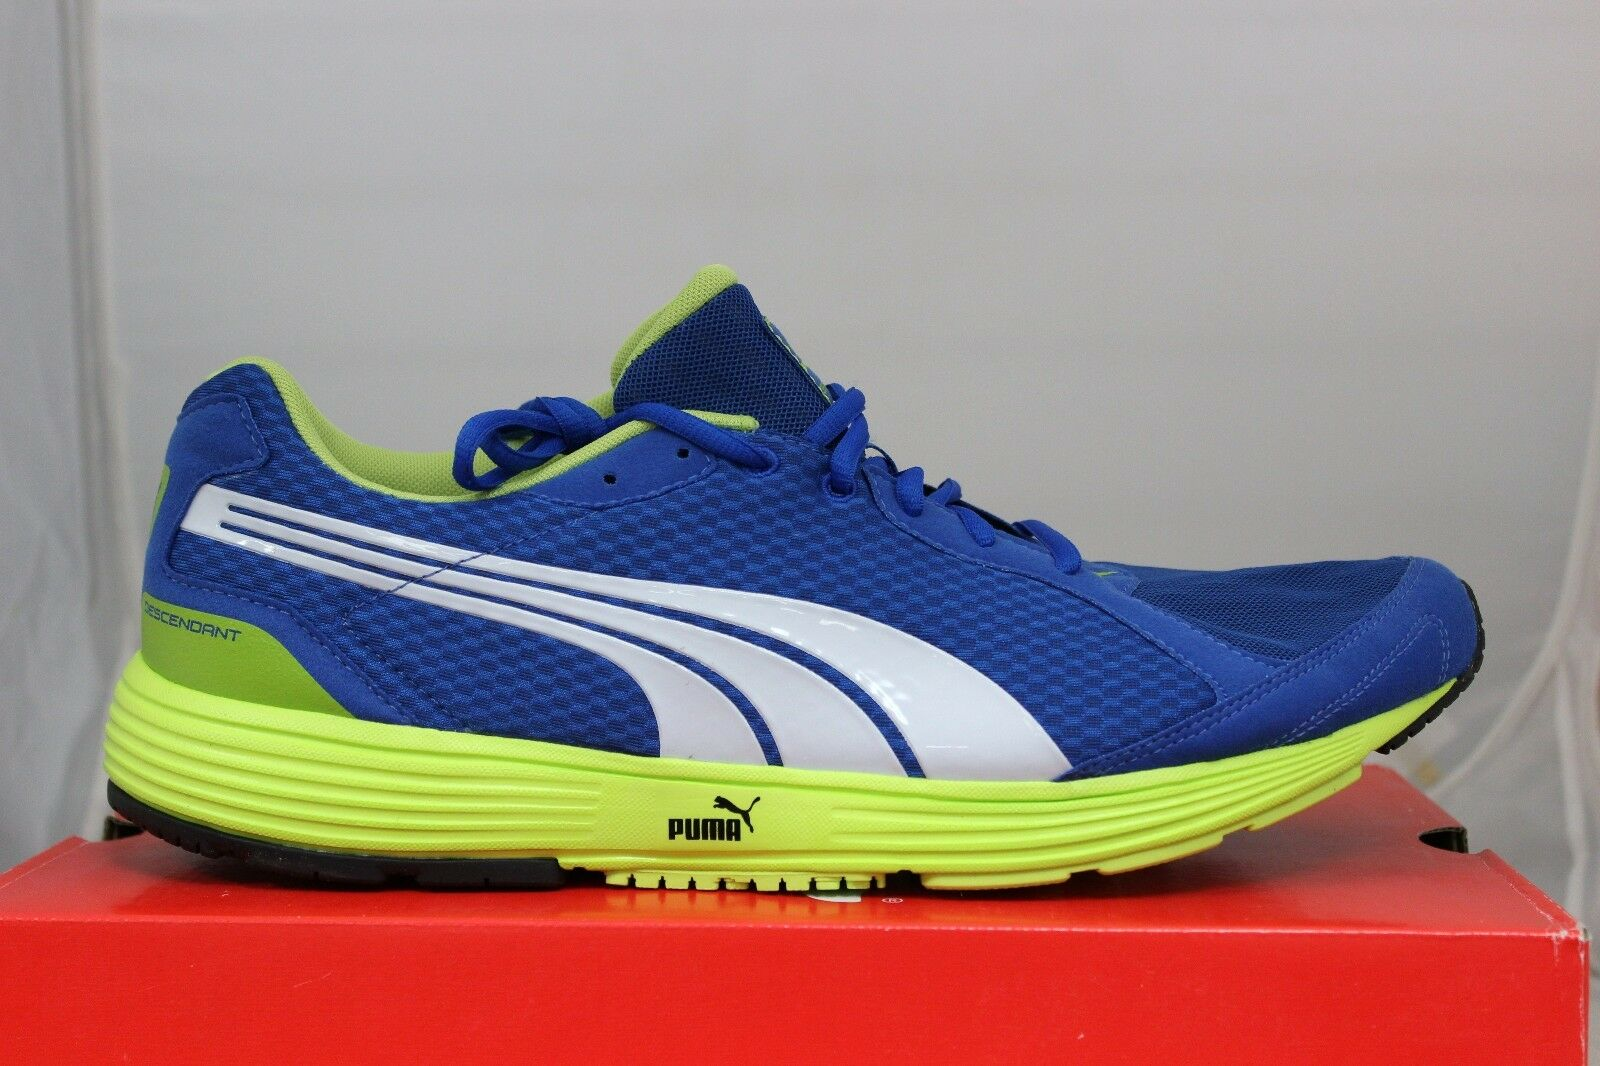 PUMA Descendant 18674816 bluee White Lime Punch New In Box